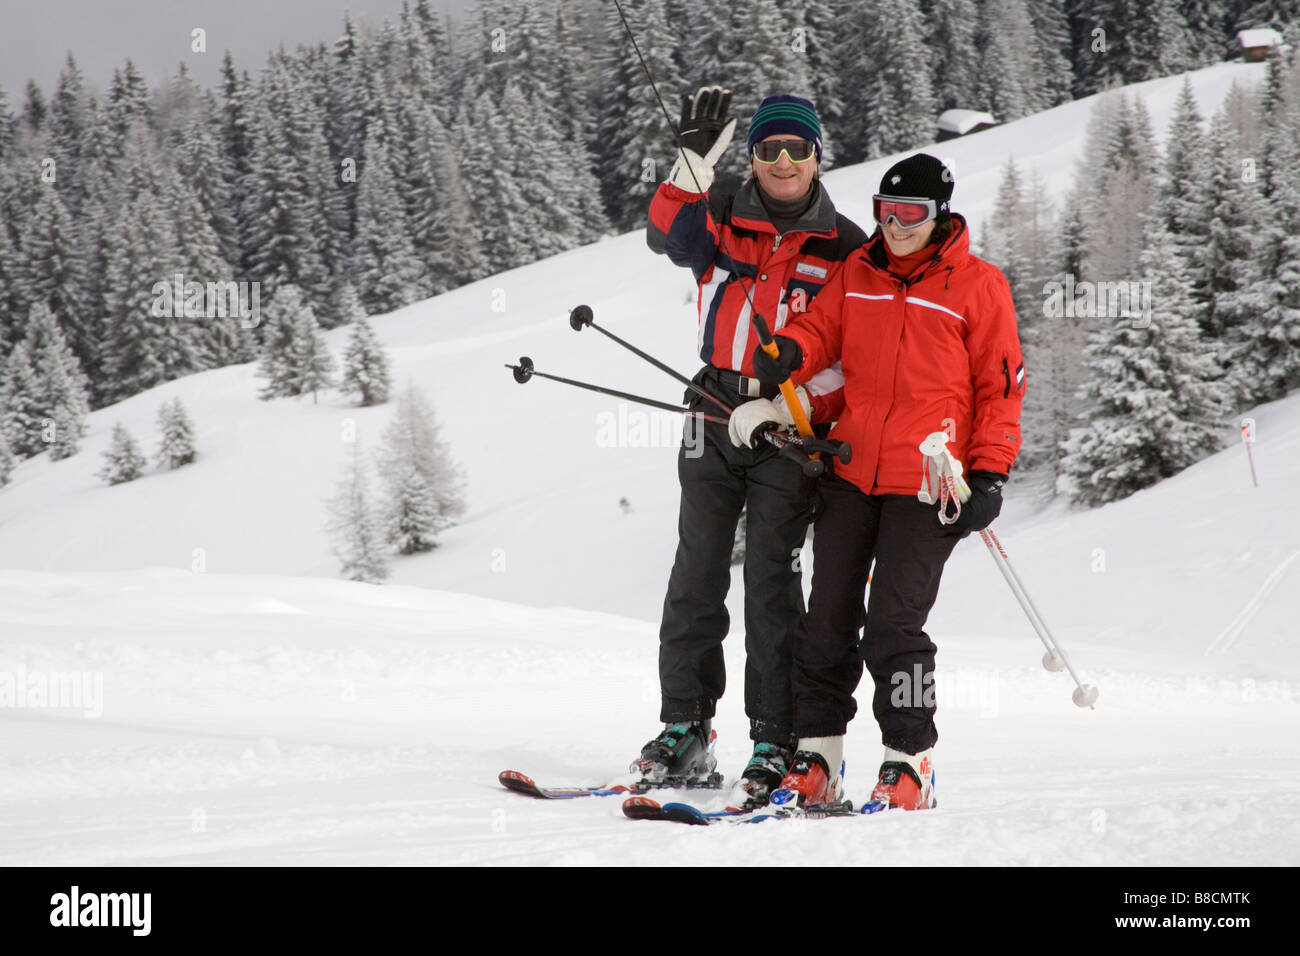 Rauris Austria EU January An older man and woman in red ski jackets  ascending to the 845afd9df